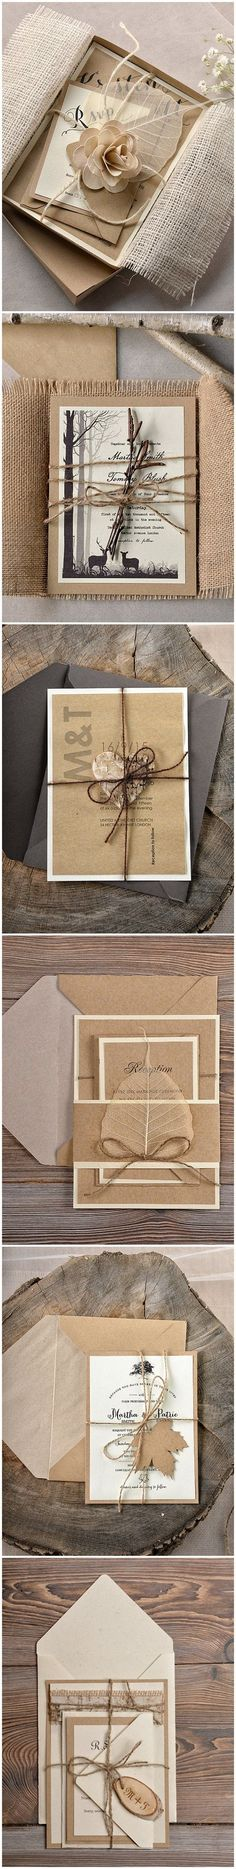 Top 30 Rustic Country Wedding Invitations